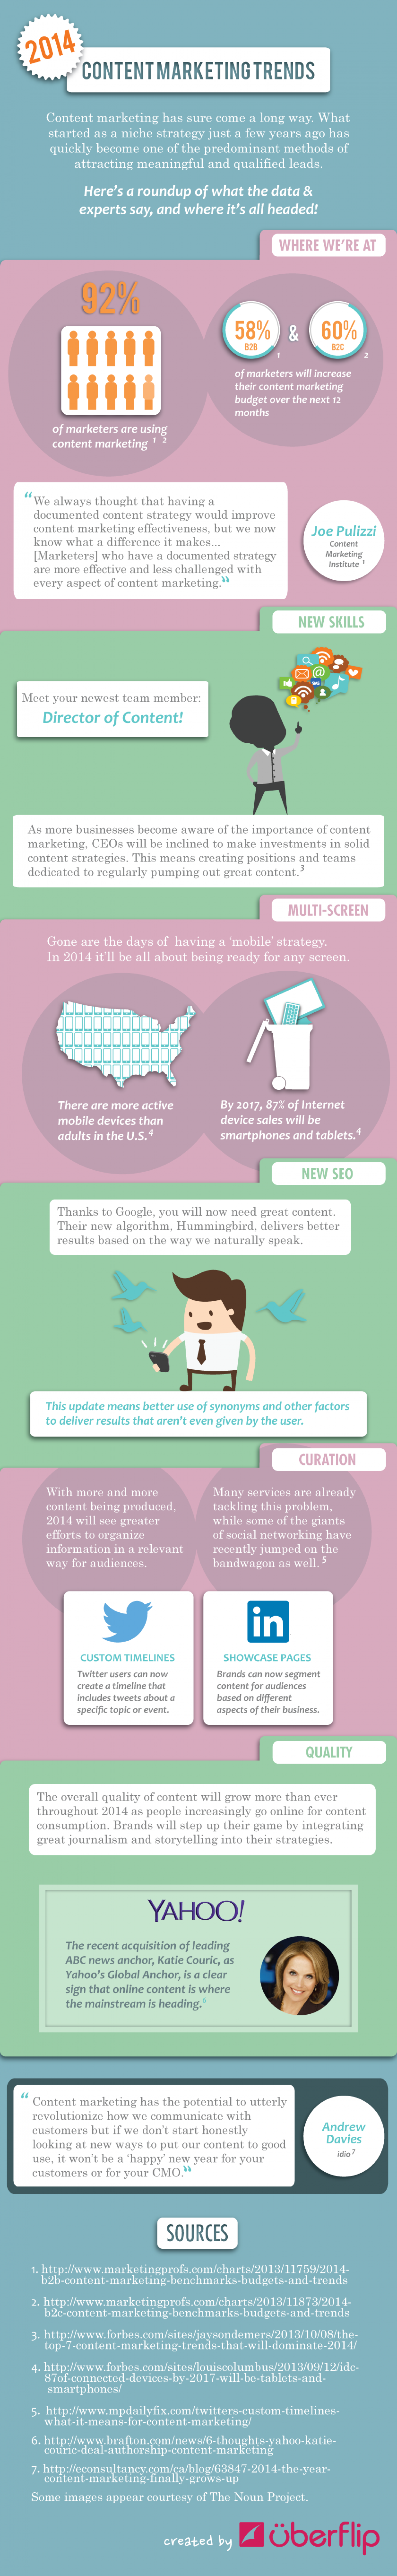 Content Marketing Trends For 2014 Infographic